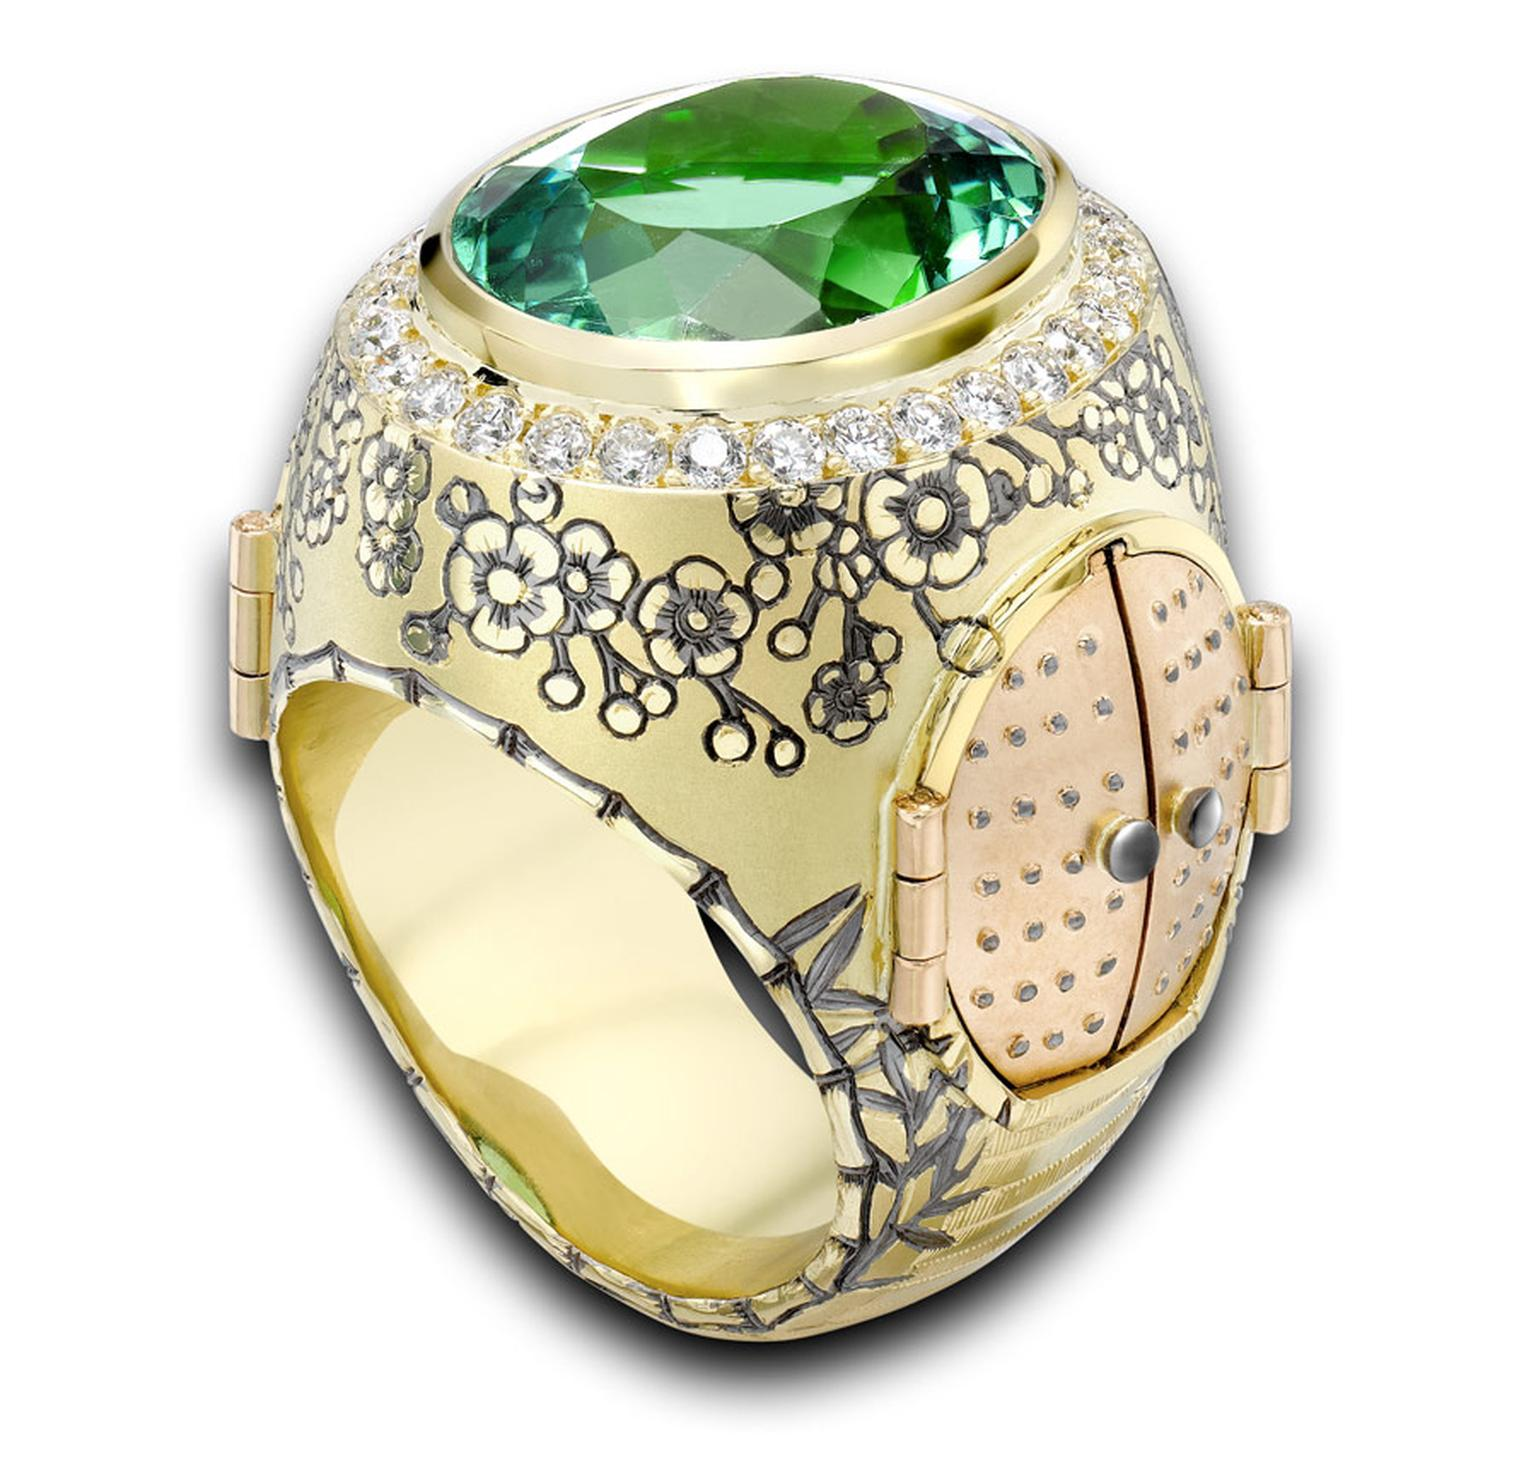 Theo-Fennell-Chinese-Secret-Garden-Ring.jpg